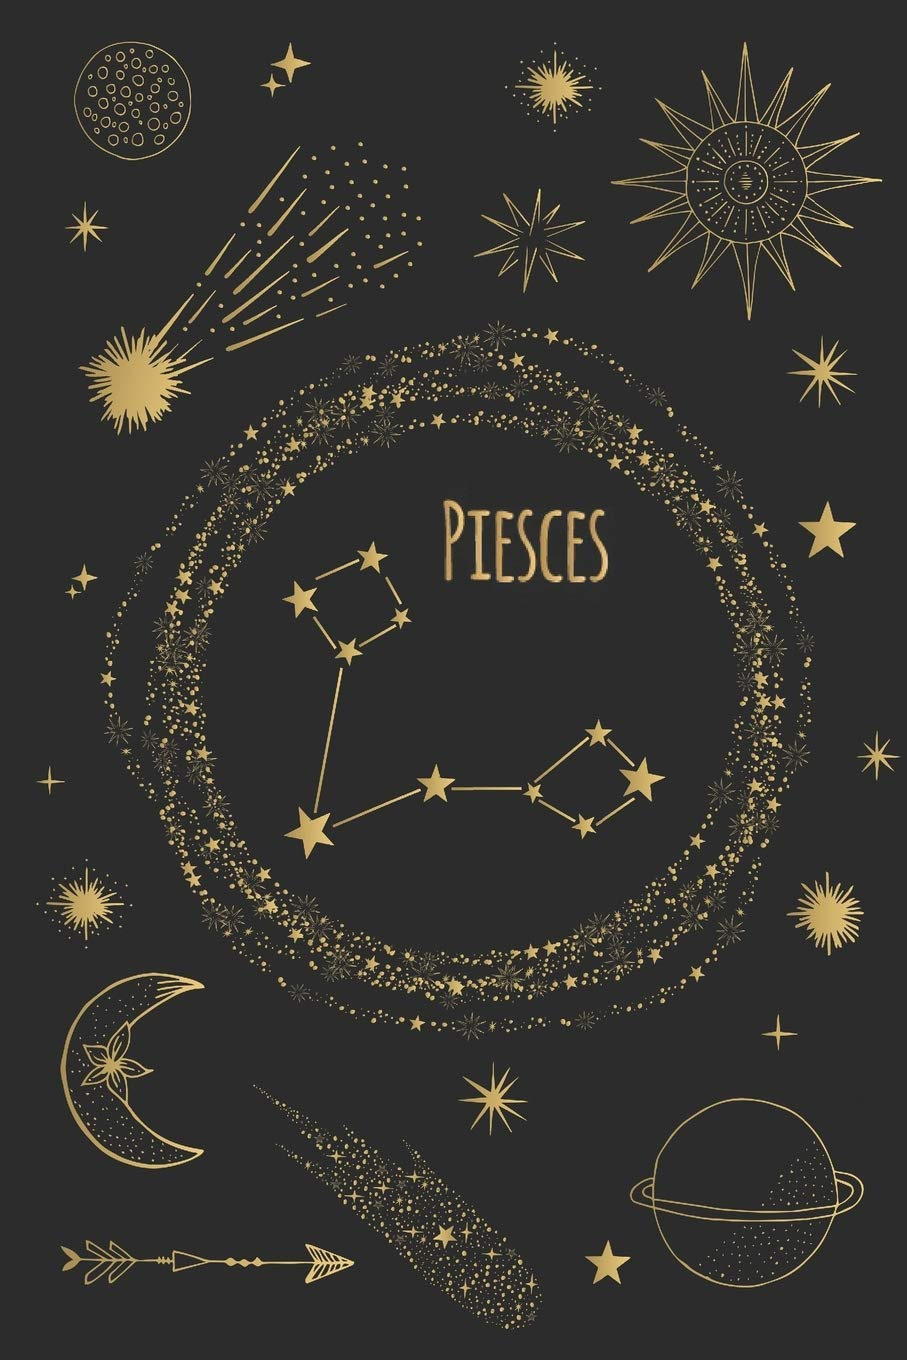 Pieces Horoscope Journal   Zodiac Notebook   A Great Pieces Gift ...